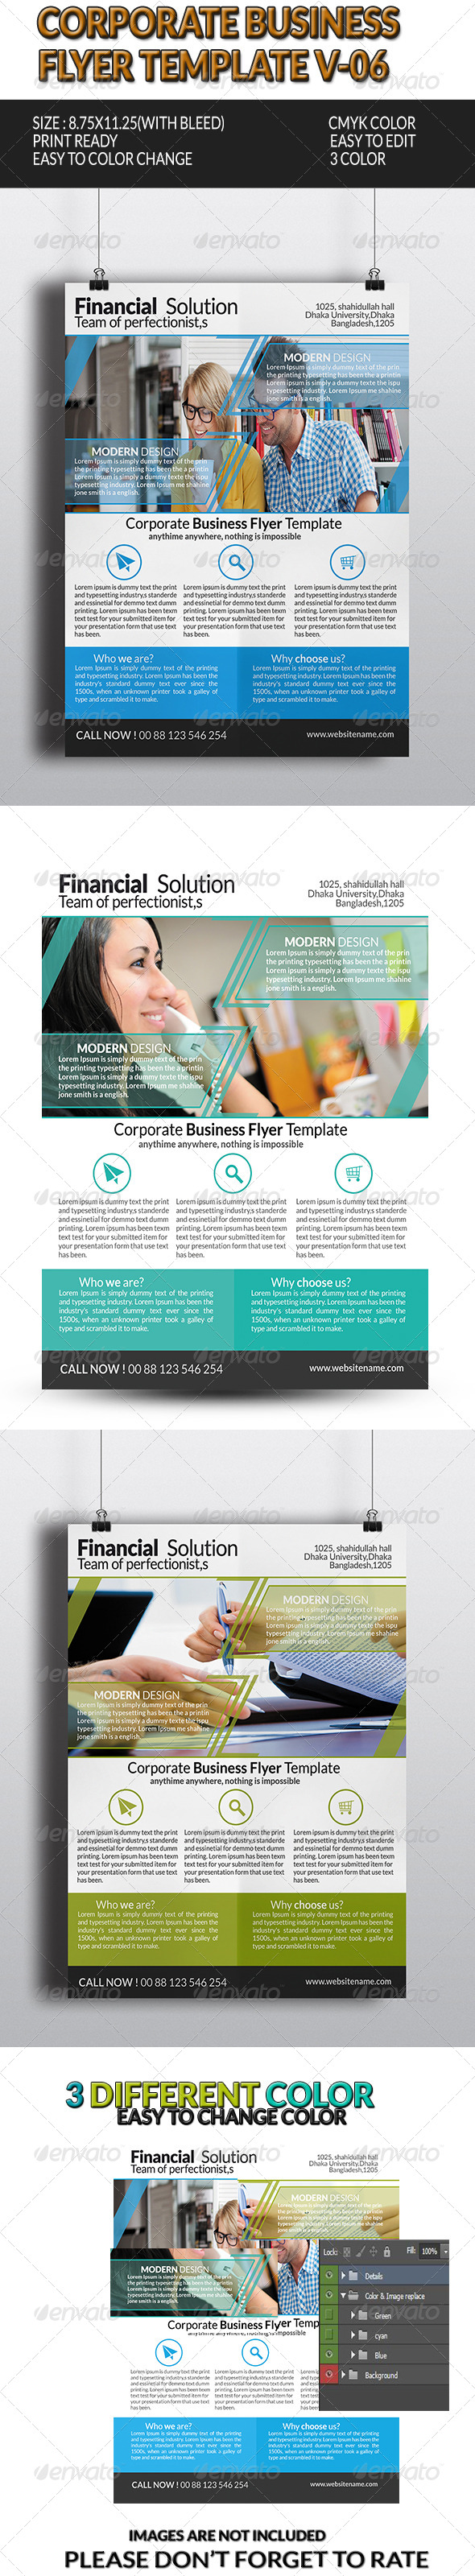 GraphicRiver Corporate Business Flyer Template V-6 8376968